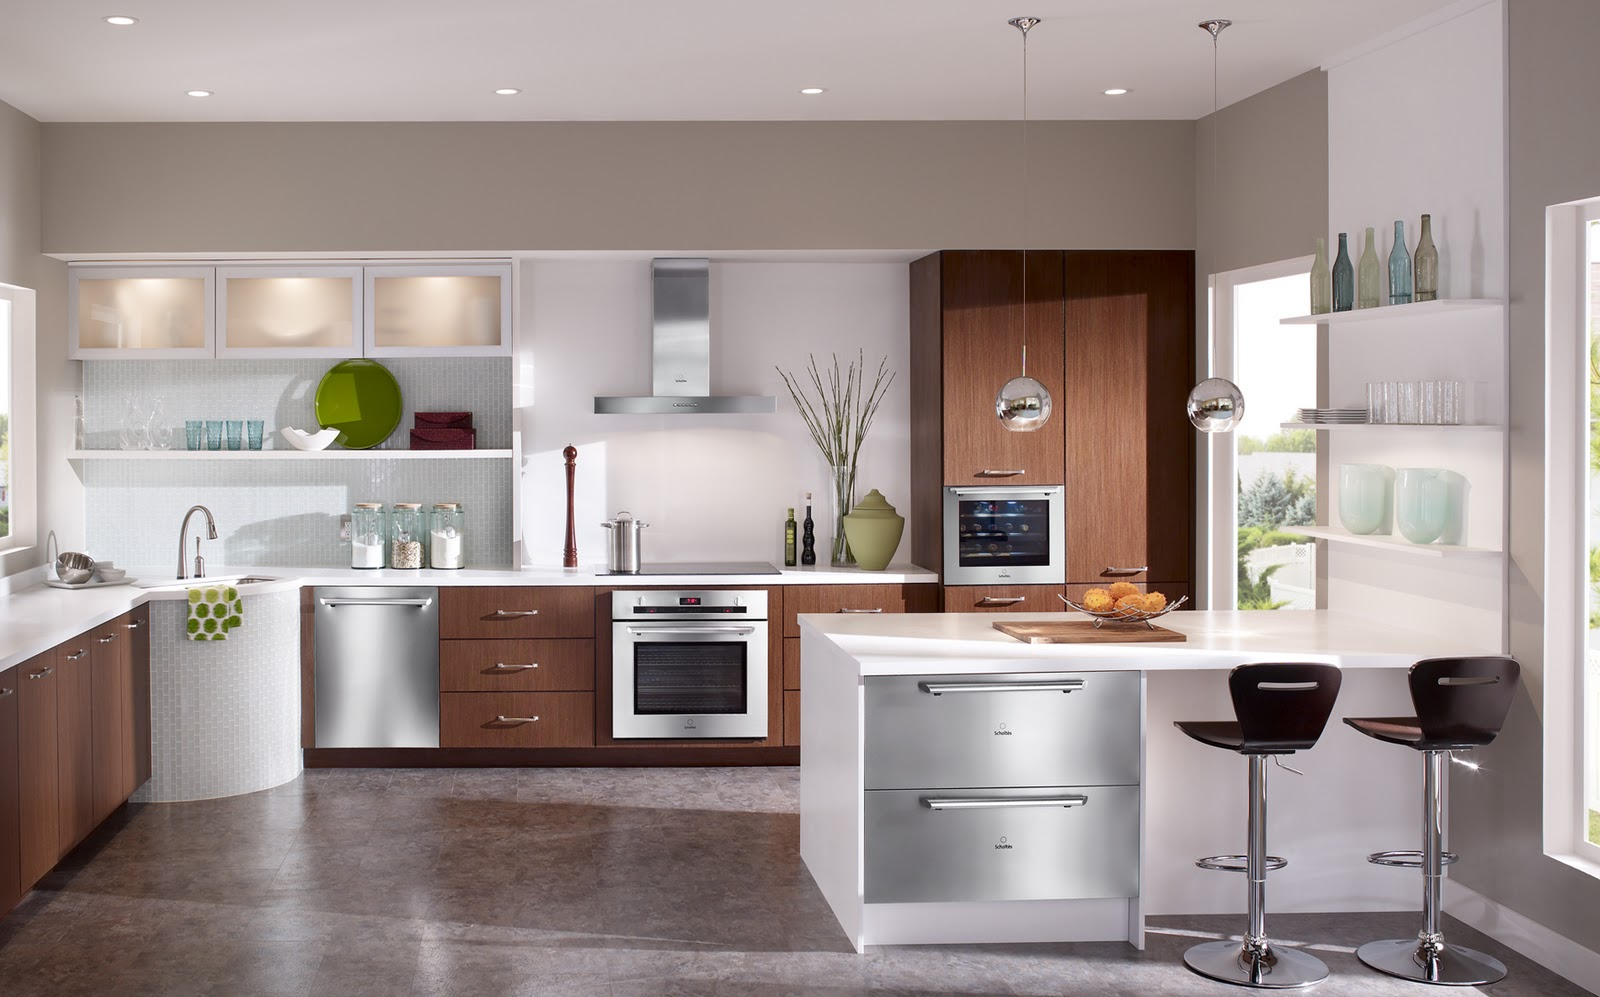 Kitchen Appliances Color Trends